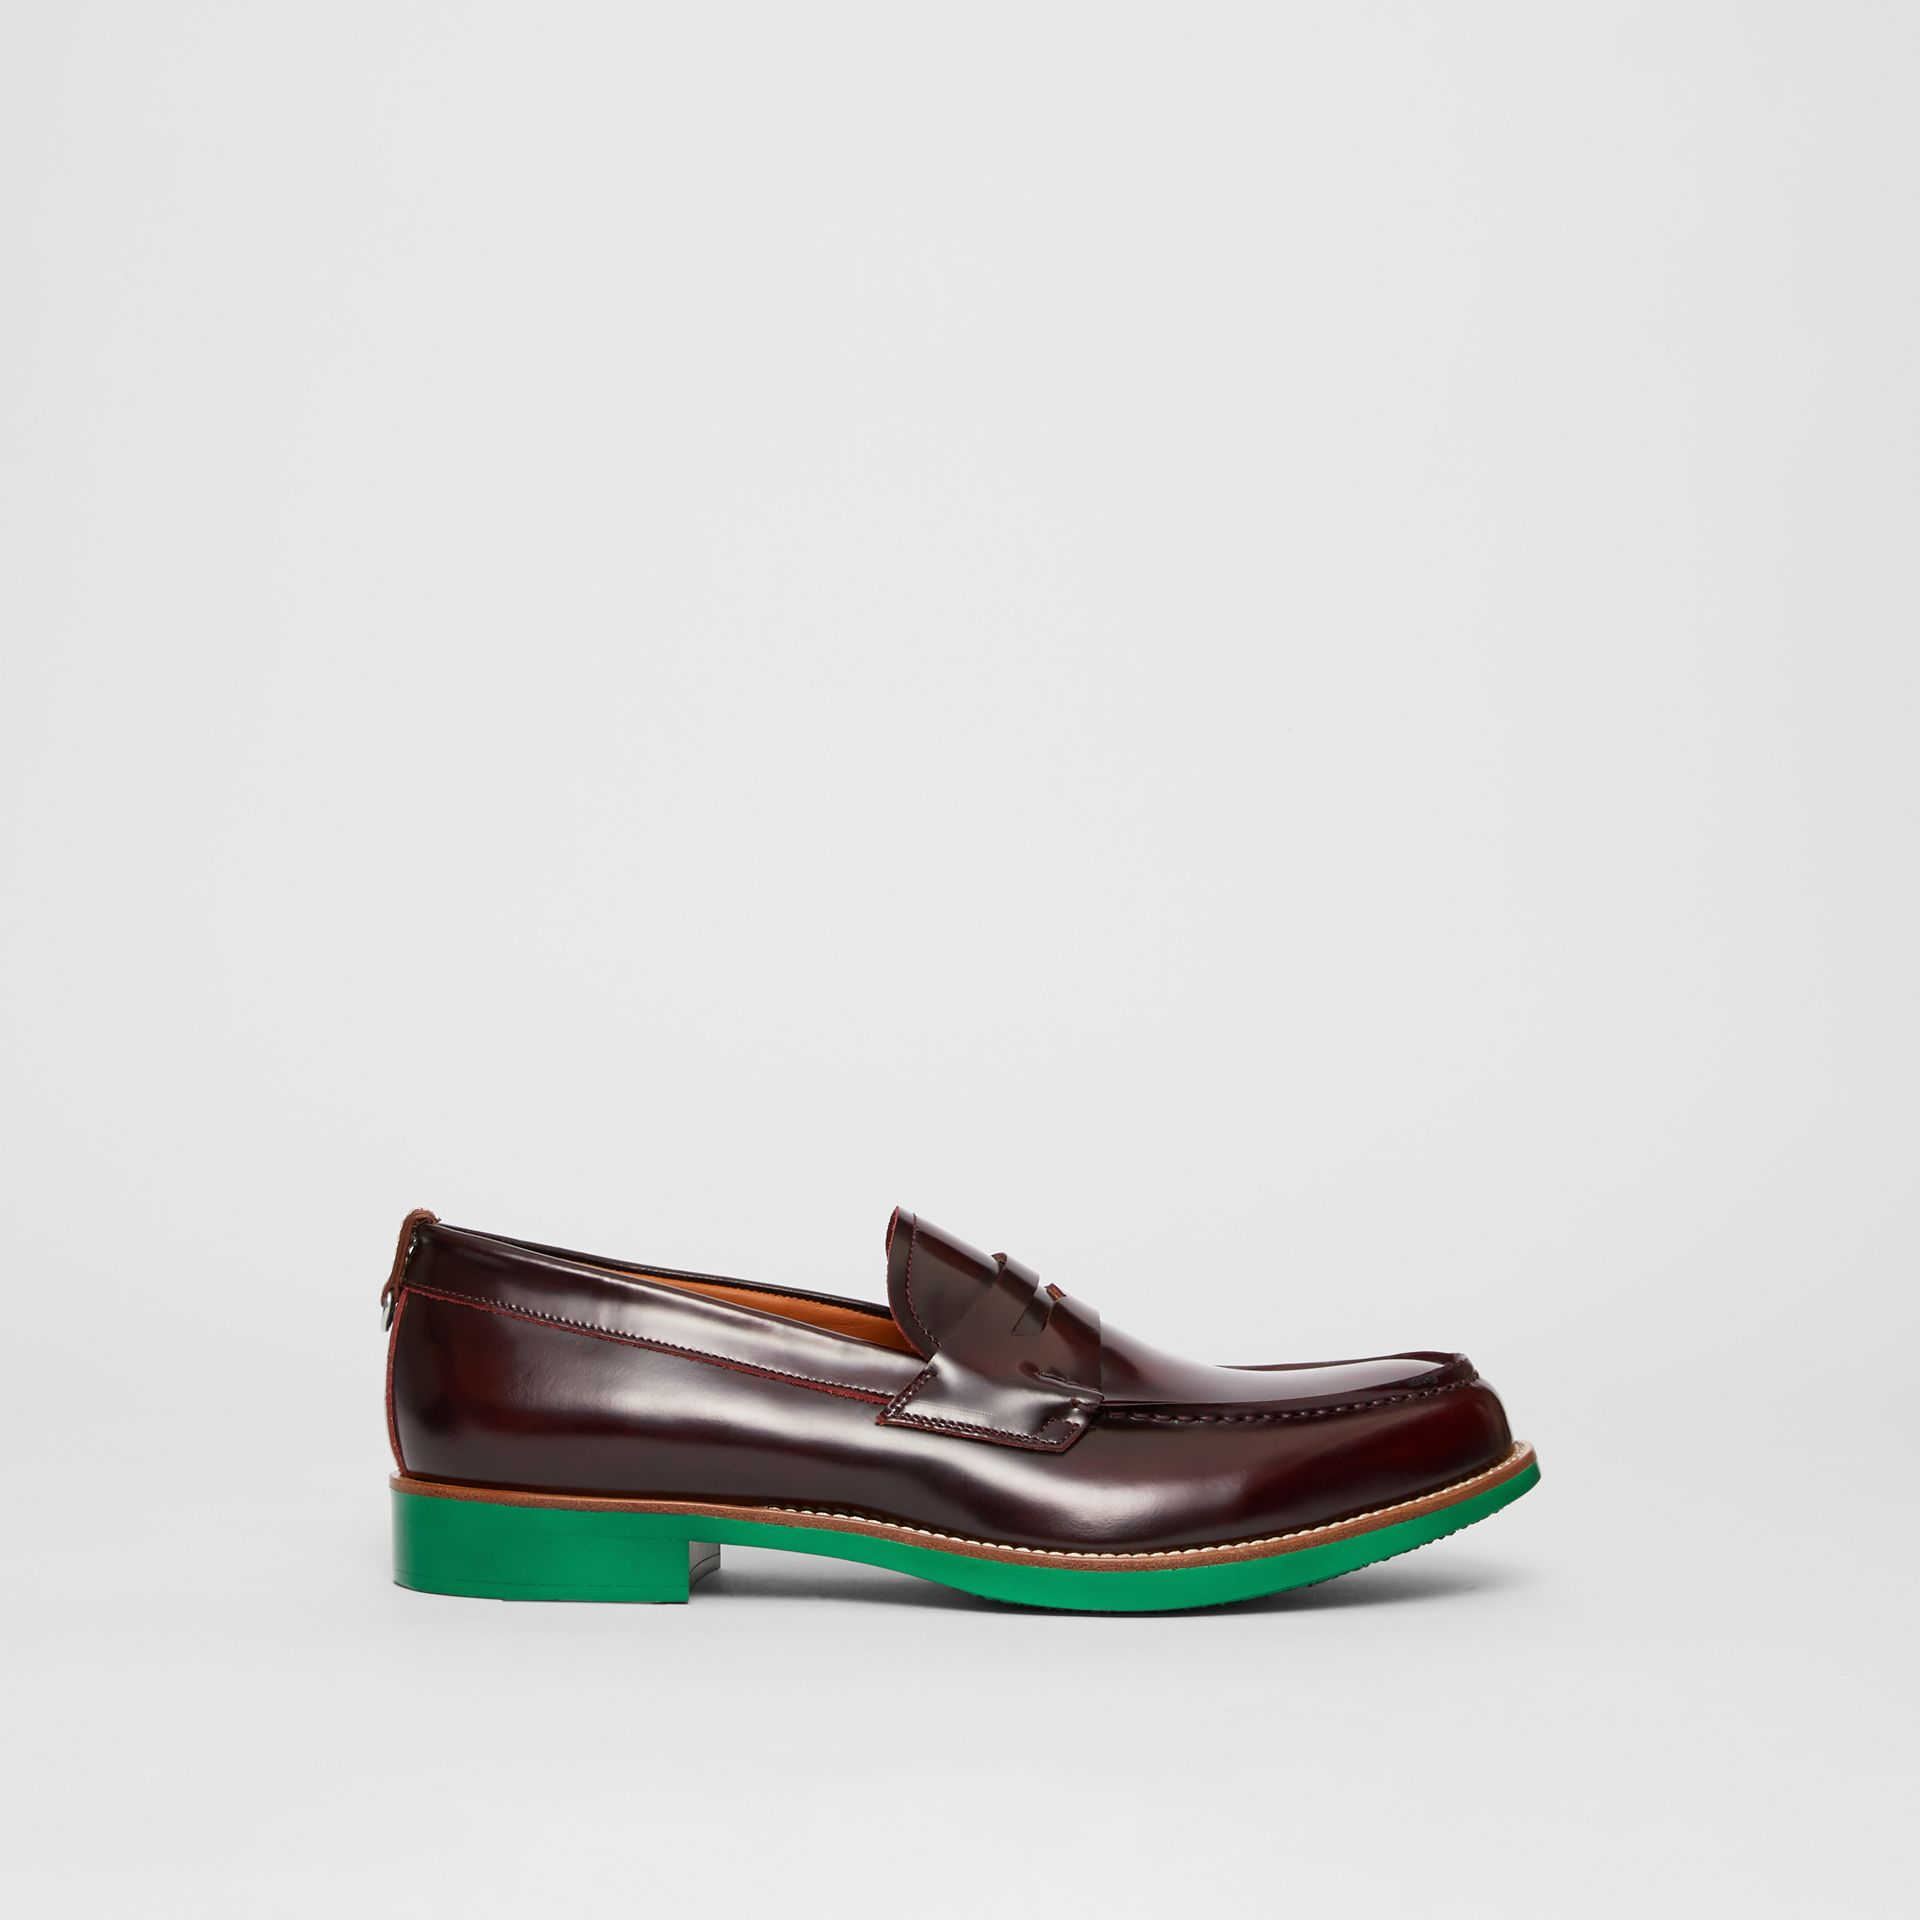 D-ring Detail Contrast Sole Leather Loafers in Bordeaux/green - Men | Burberry Hong Kong - gallery image 5